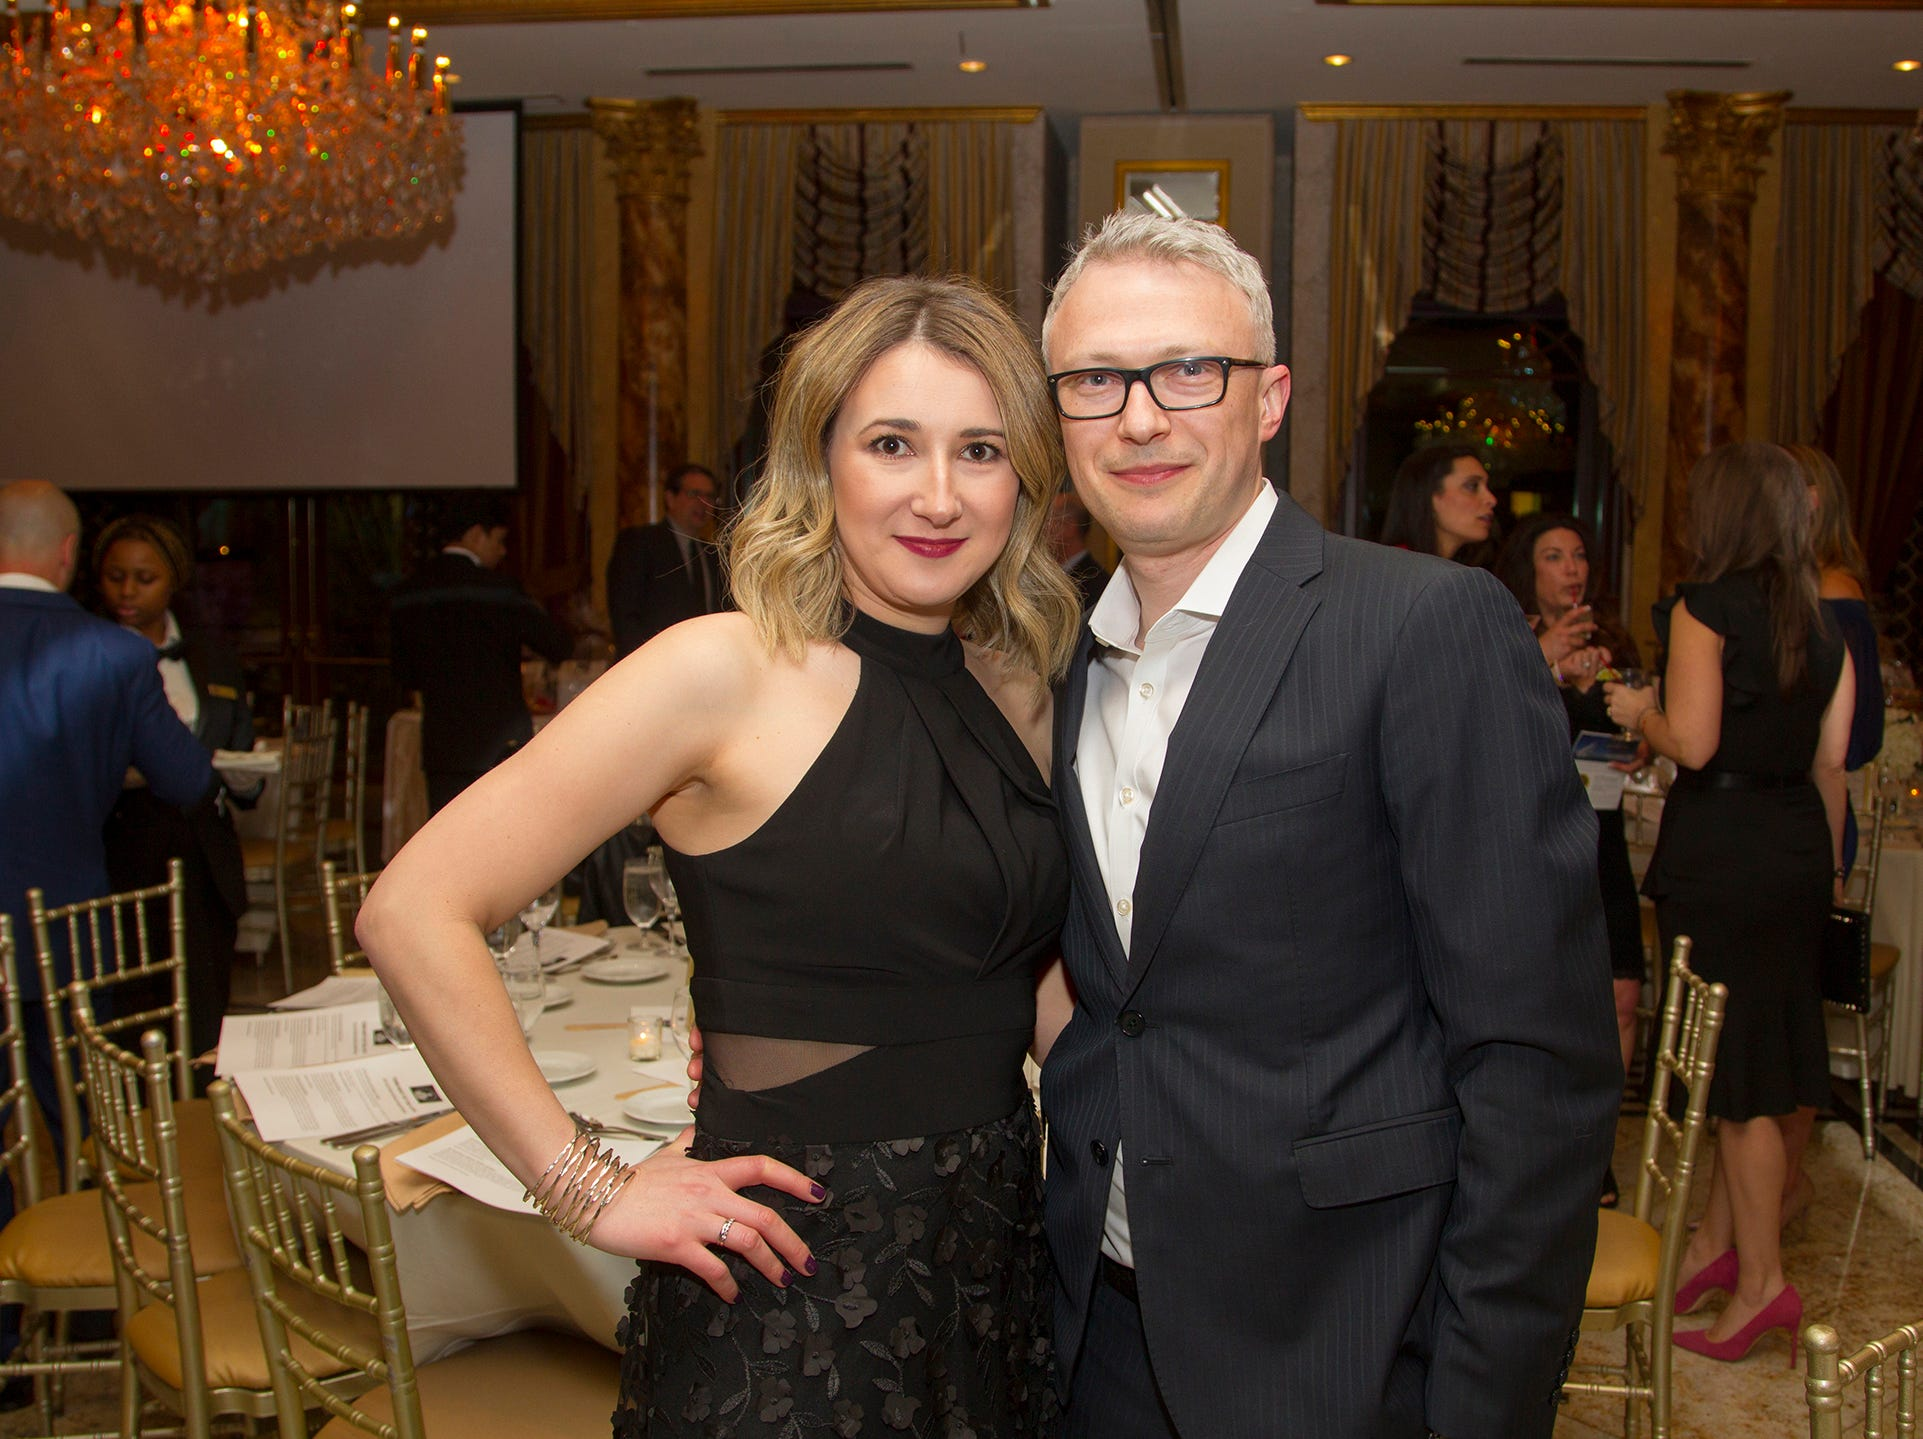 Arkady and Jenny Guldnstein. Upper Saddle River Education Foundation hosted its Town Night Out Gala at Seasons in Washington Twp. 04/06/2019